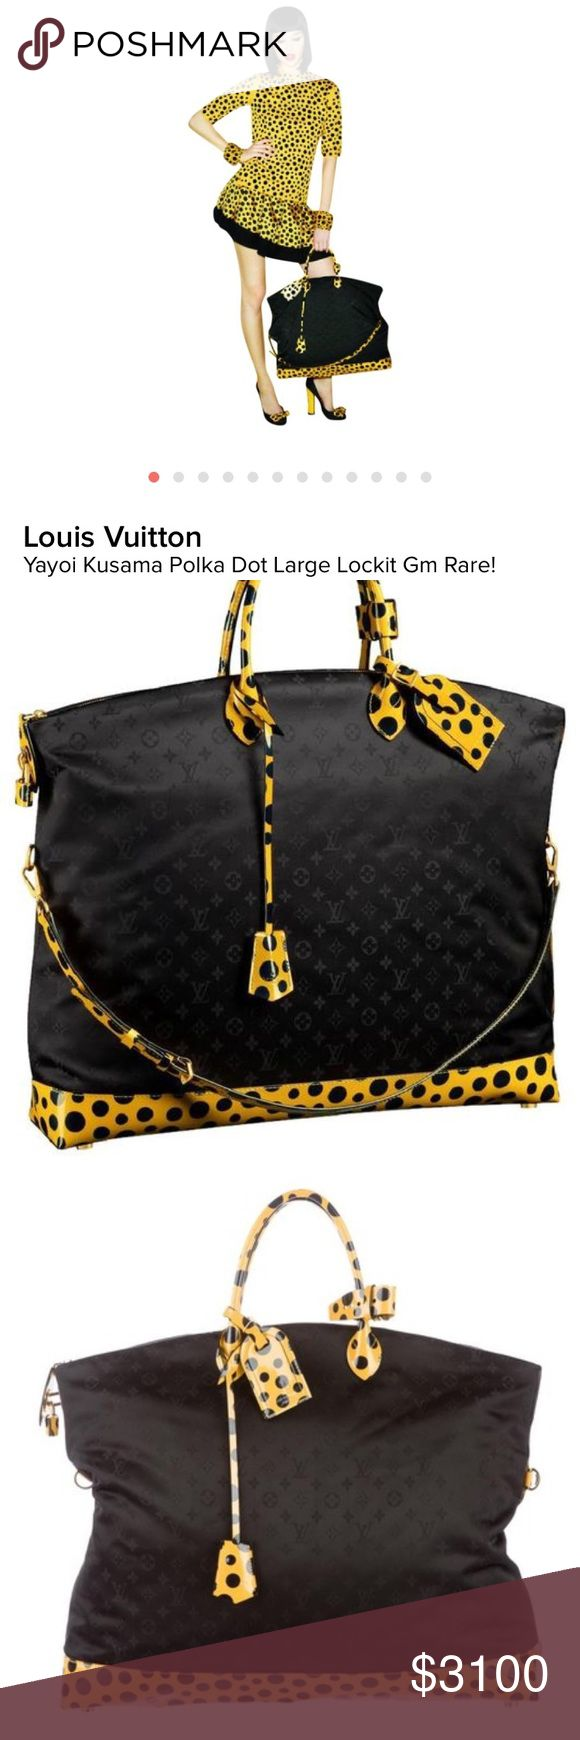 LOUIS VUITTON YAYOI KUSAMA POLKA DOT TOTE BAG!! You are looking at a highly sought after Limited Edition Louis Vuitton Polka Dot Infinity Lockit GM Tote from the Yayoi Kusama collection. As seen on Lady Gaga!!  Black LV monogram nylon with brass hardware, dual rolled top handles, optional shoulder strap, yellow polka dot patent leather trim throughout, tonal quilted monogram interior lining, single interior wall pocket with zip closure and zip closure at top. Includes original tags and care…